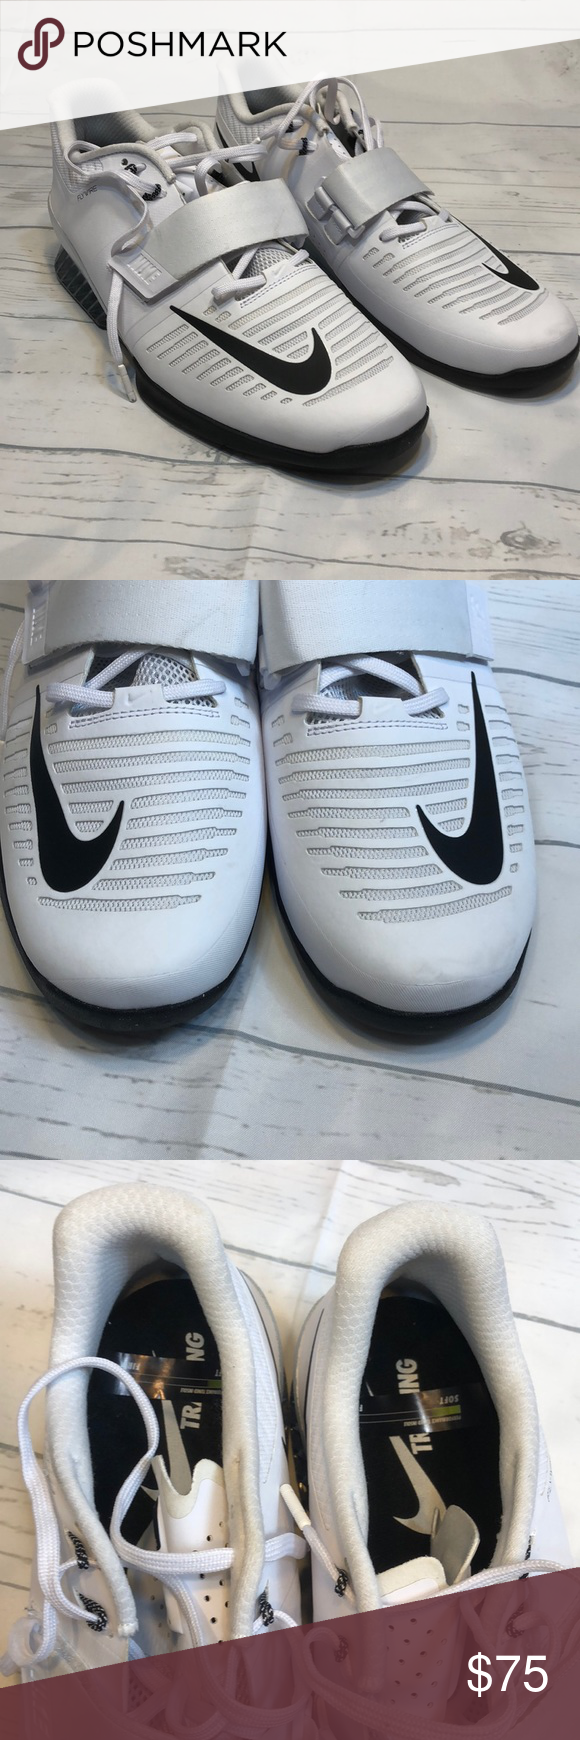 2fee758d7662 Mens Nike Romaleos 3 Weightlifting Size 15 NEW Mens Nike Romaleos 3  Weightlifting White Black 852933-100 Size 15 SOFT insoles ONLY No box Nike  Shoes ...